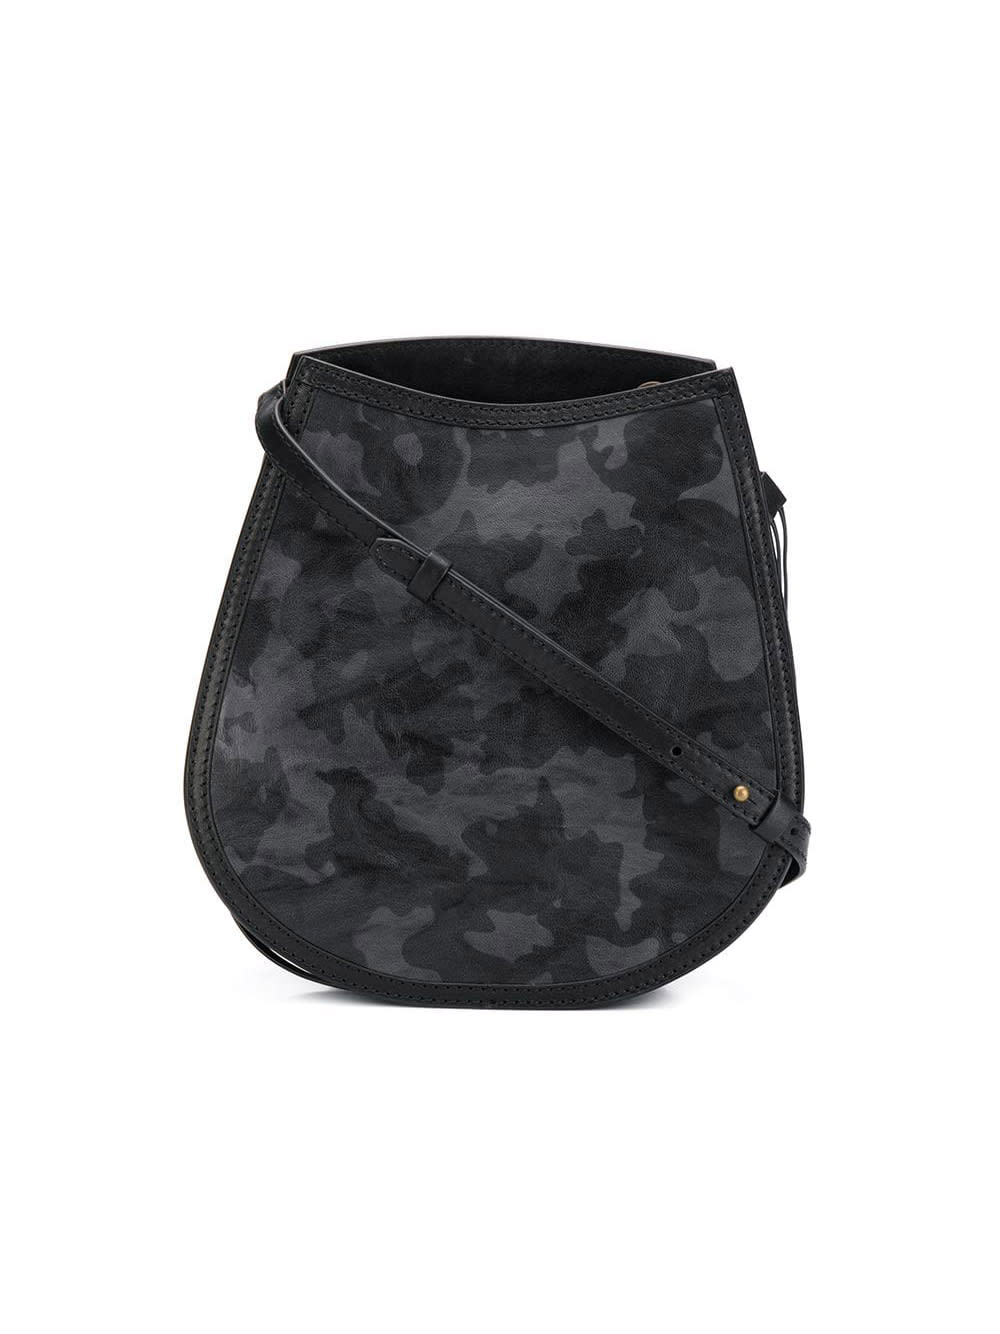 Mr & Mrs Italy HALF MOON CAMOUFLAGE LEATHER BAG